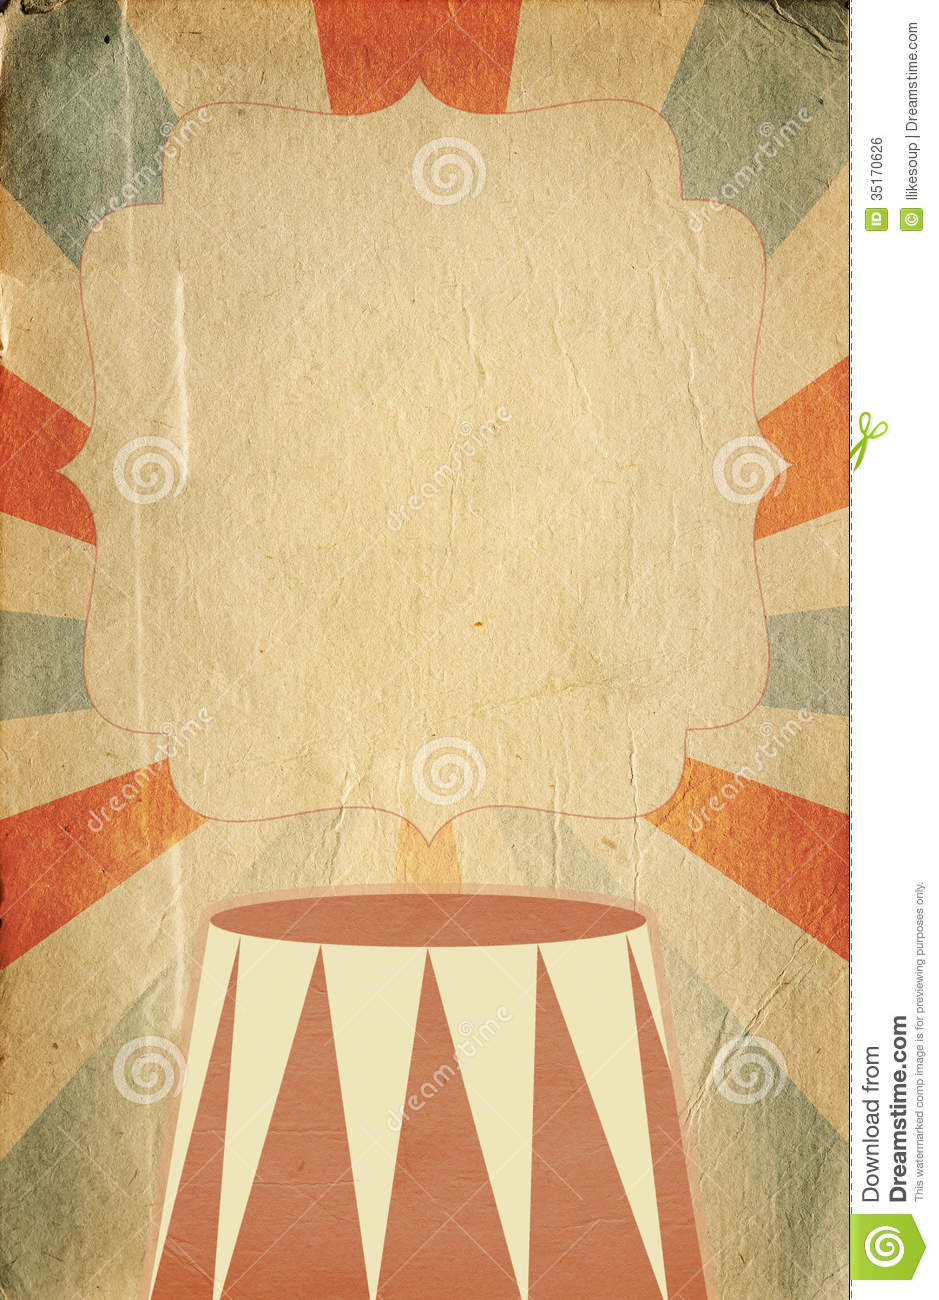 7 Images of Free Circus Printable Background